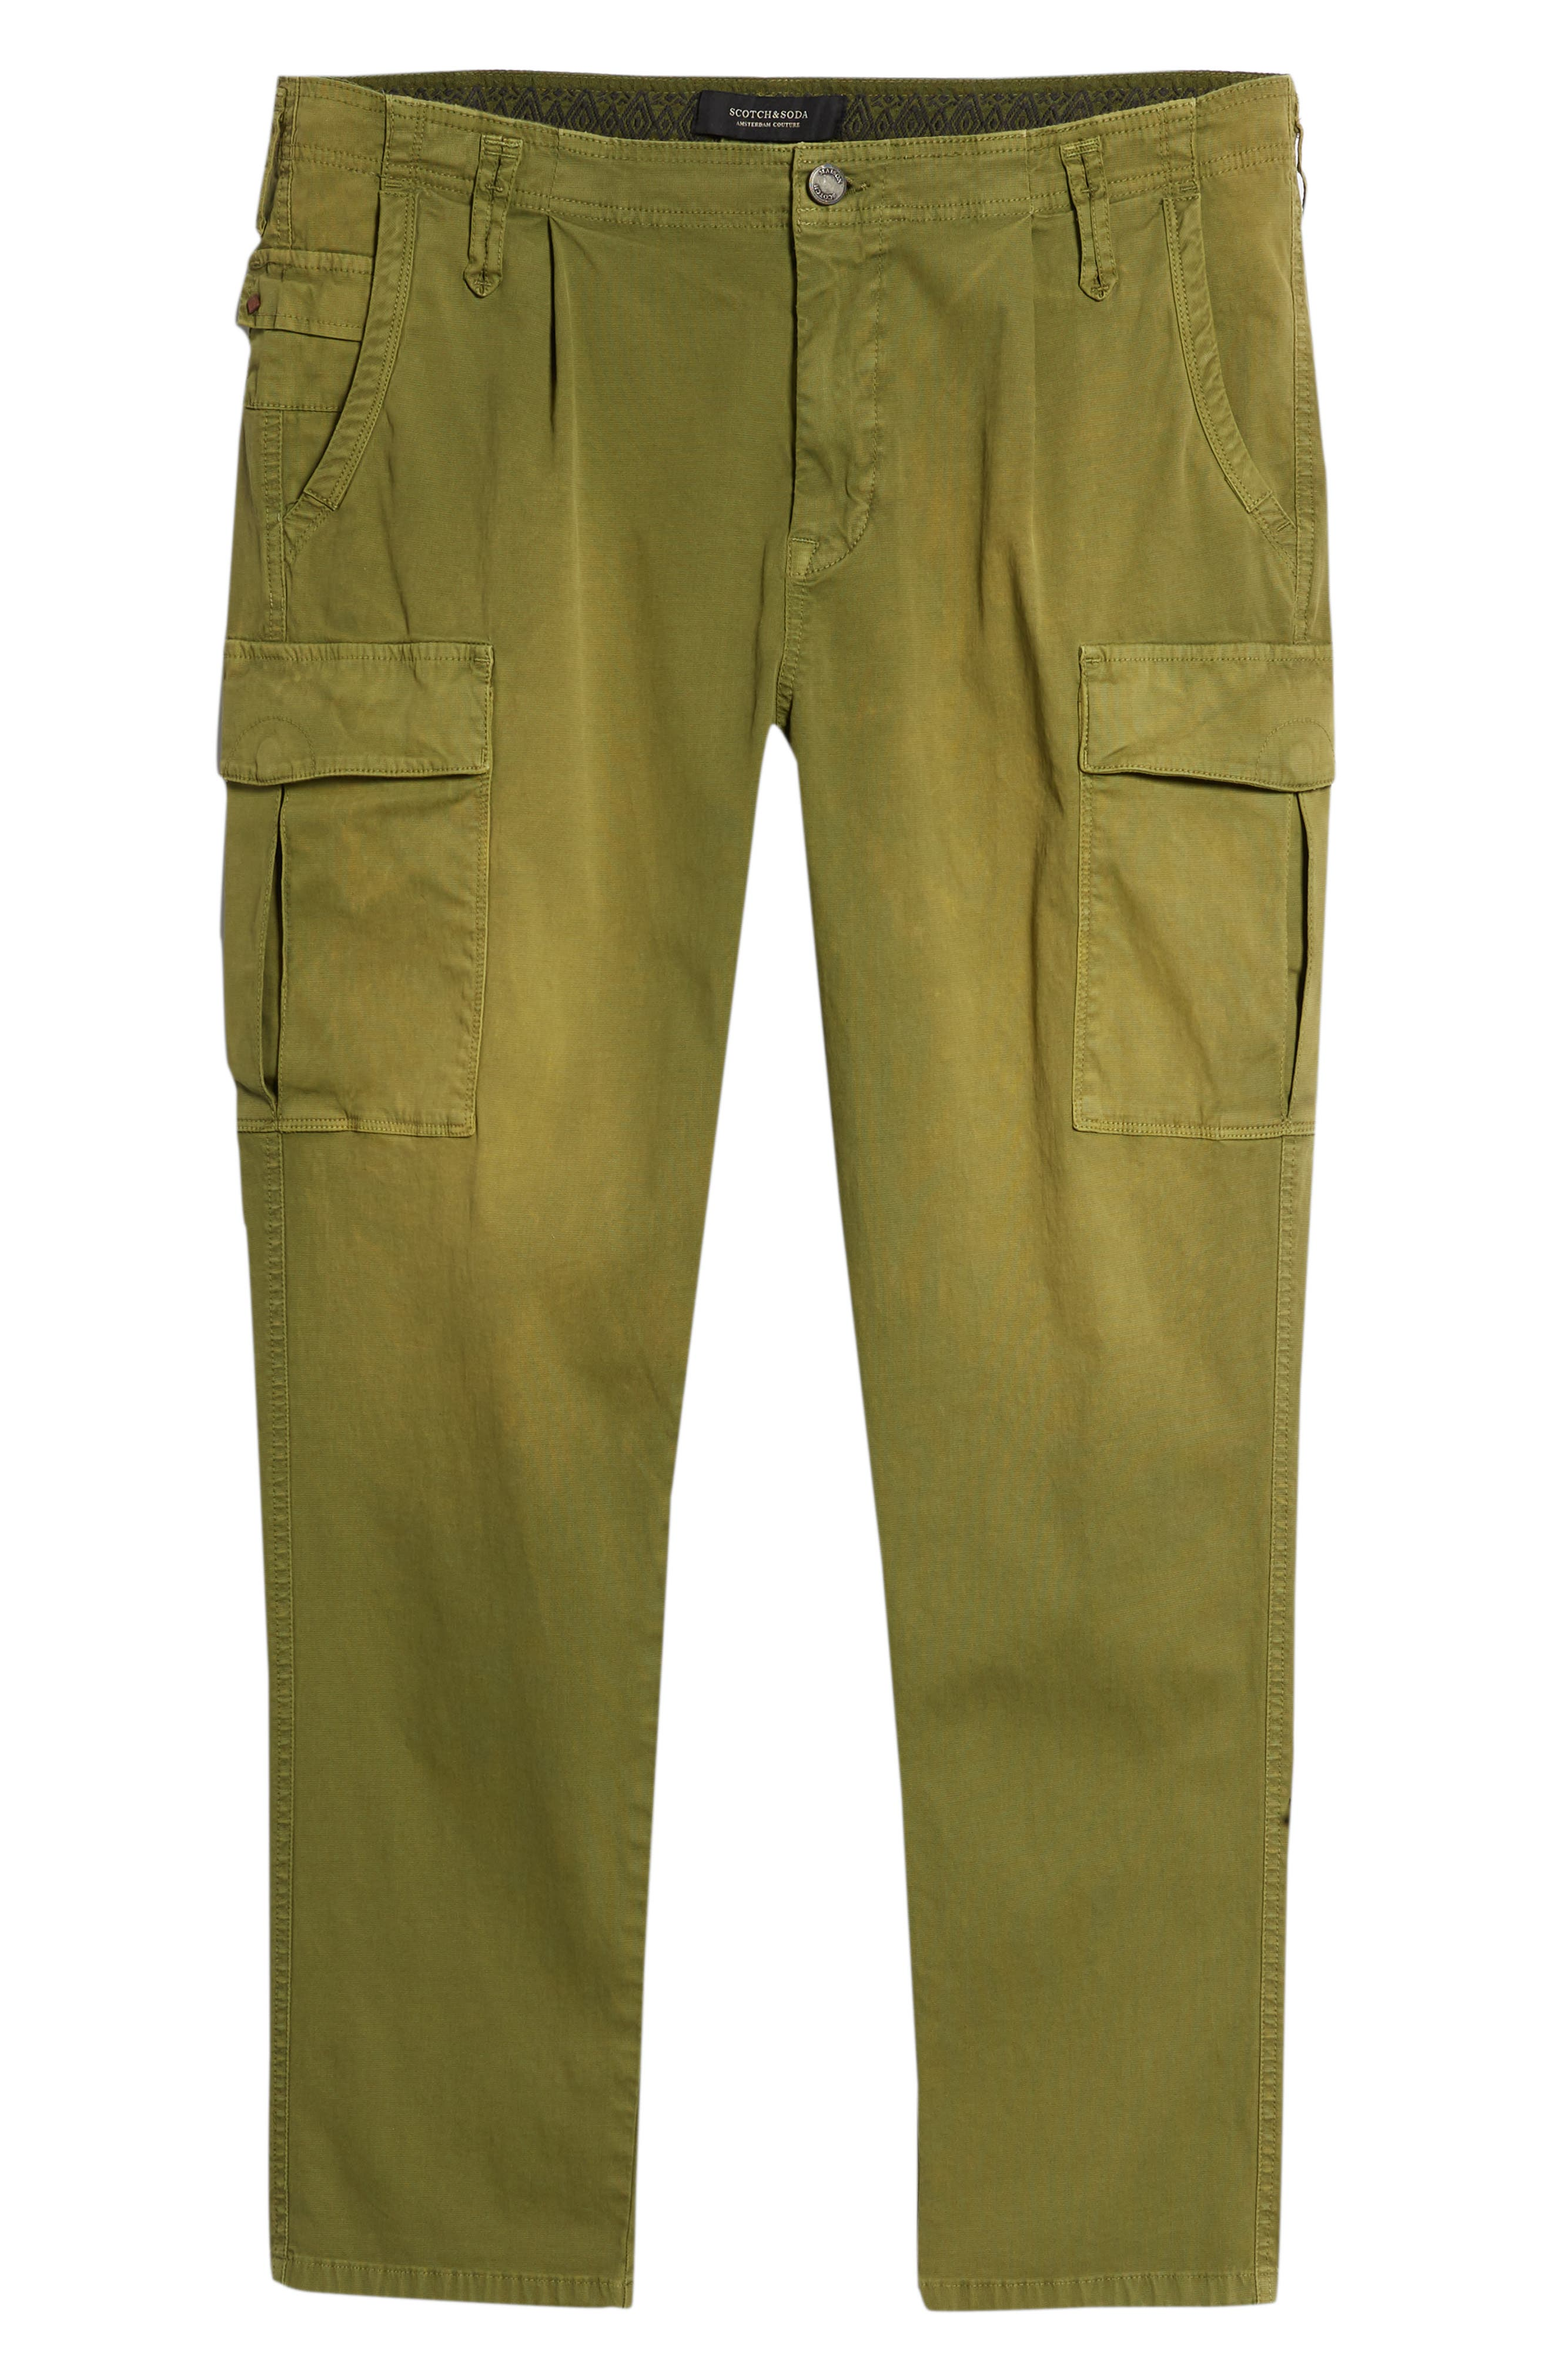 SCOTCH & SODA,                             Loose Taper Fit Washed Cargo Pants,                             Alternate thumbnail 6, color,                             MILITARY